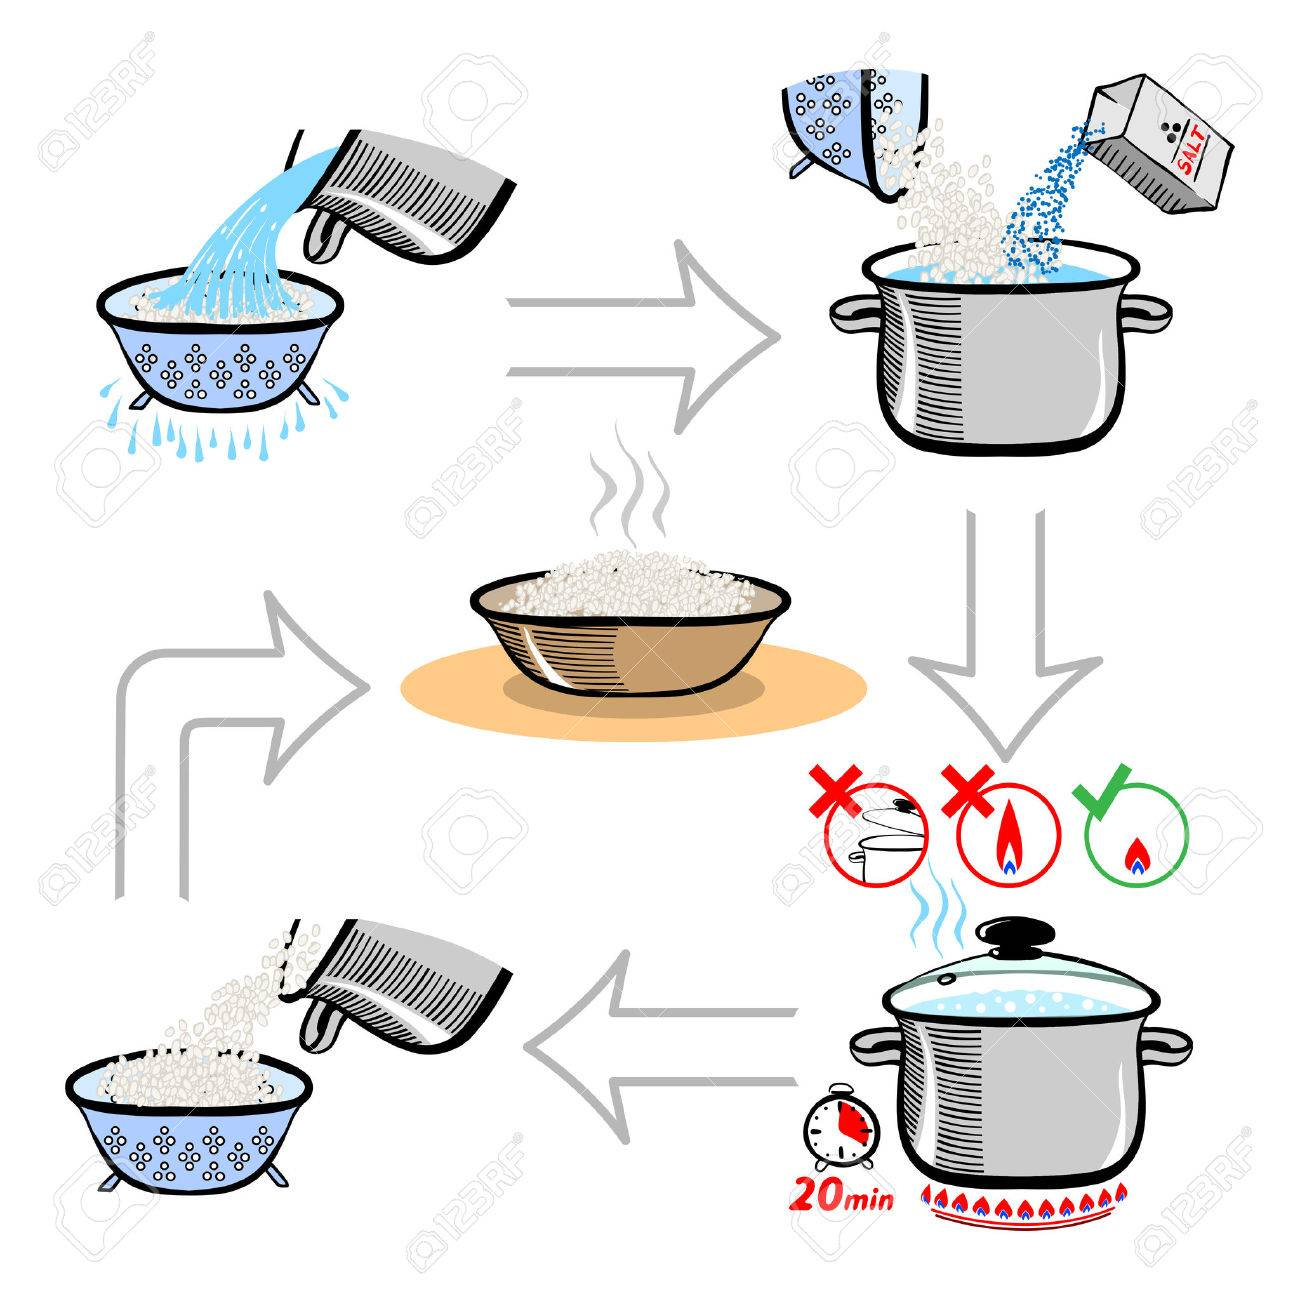 Cookinggraphics Step By Step Recipegraphic For Cooking Rice Vector  Illustration Stock Vector